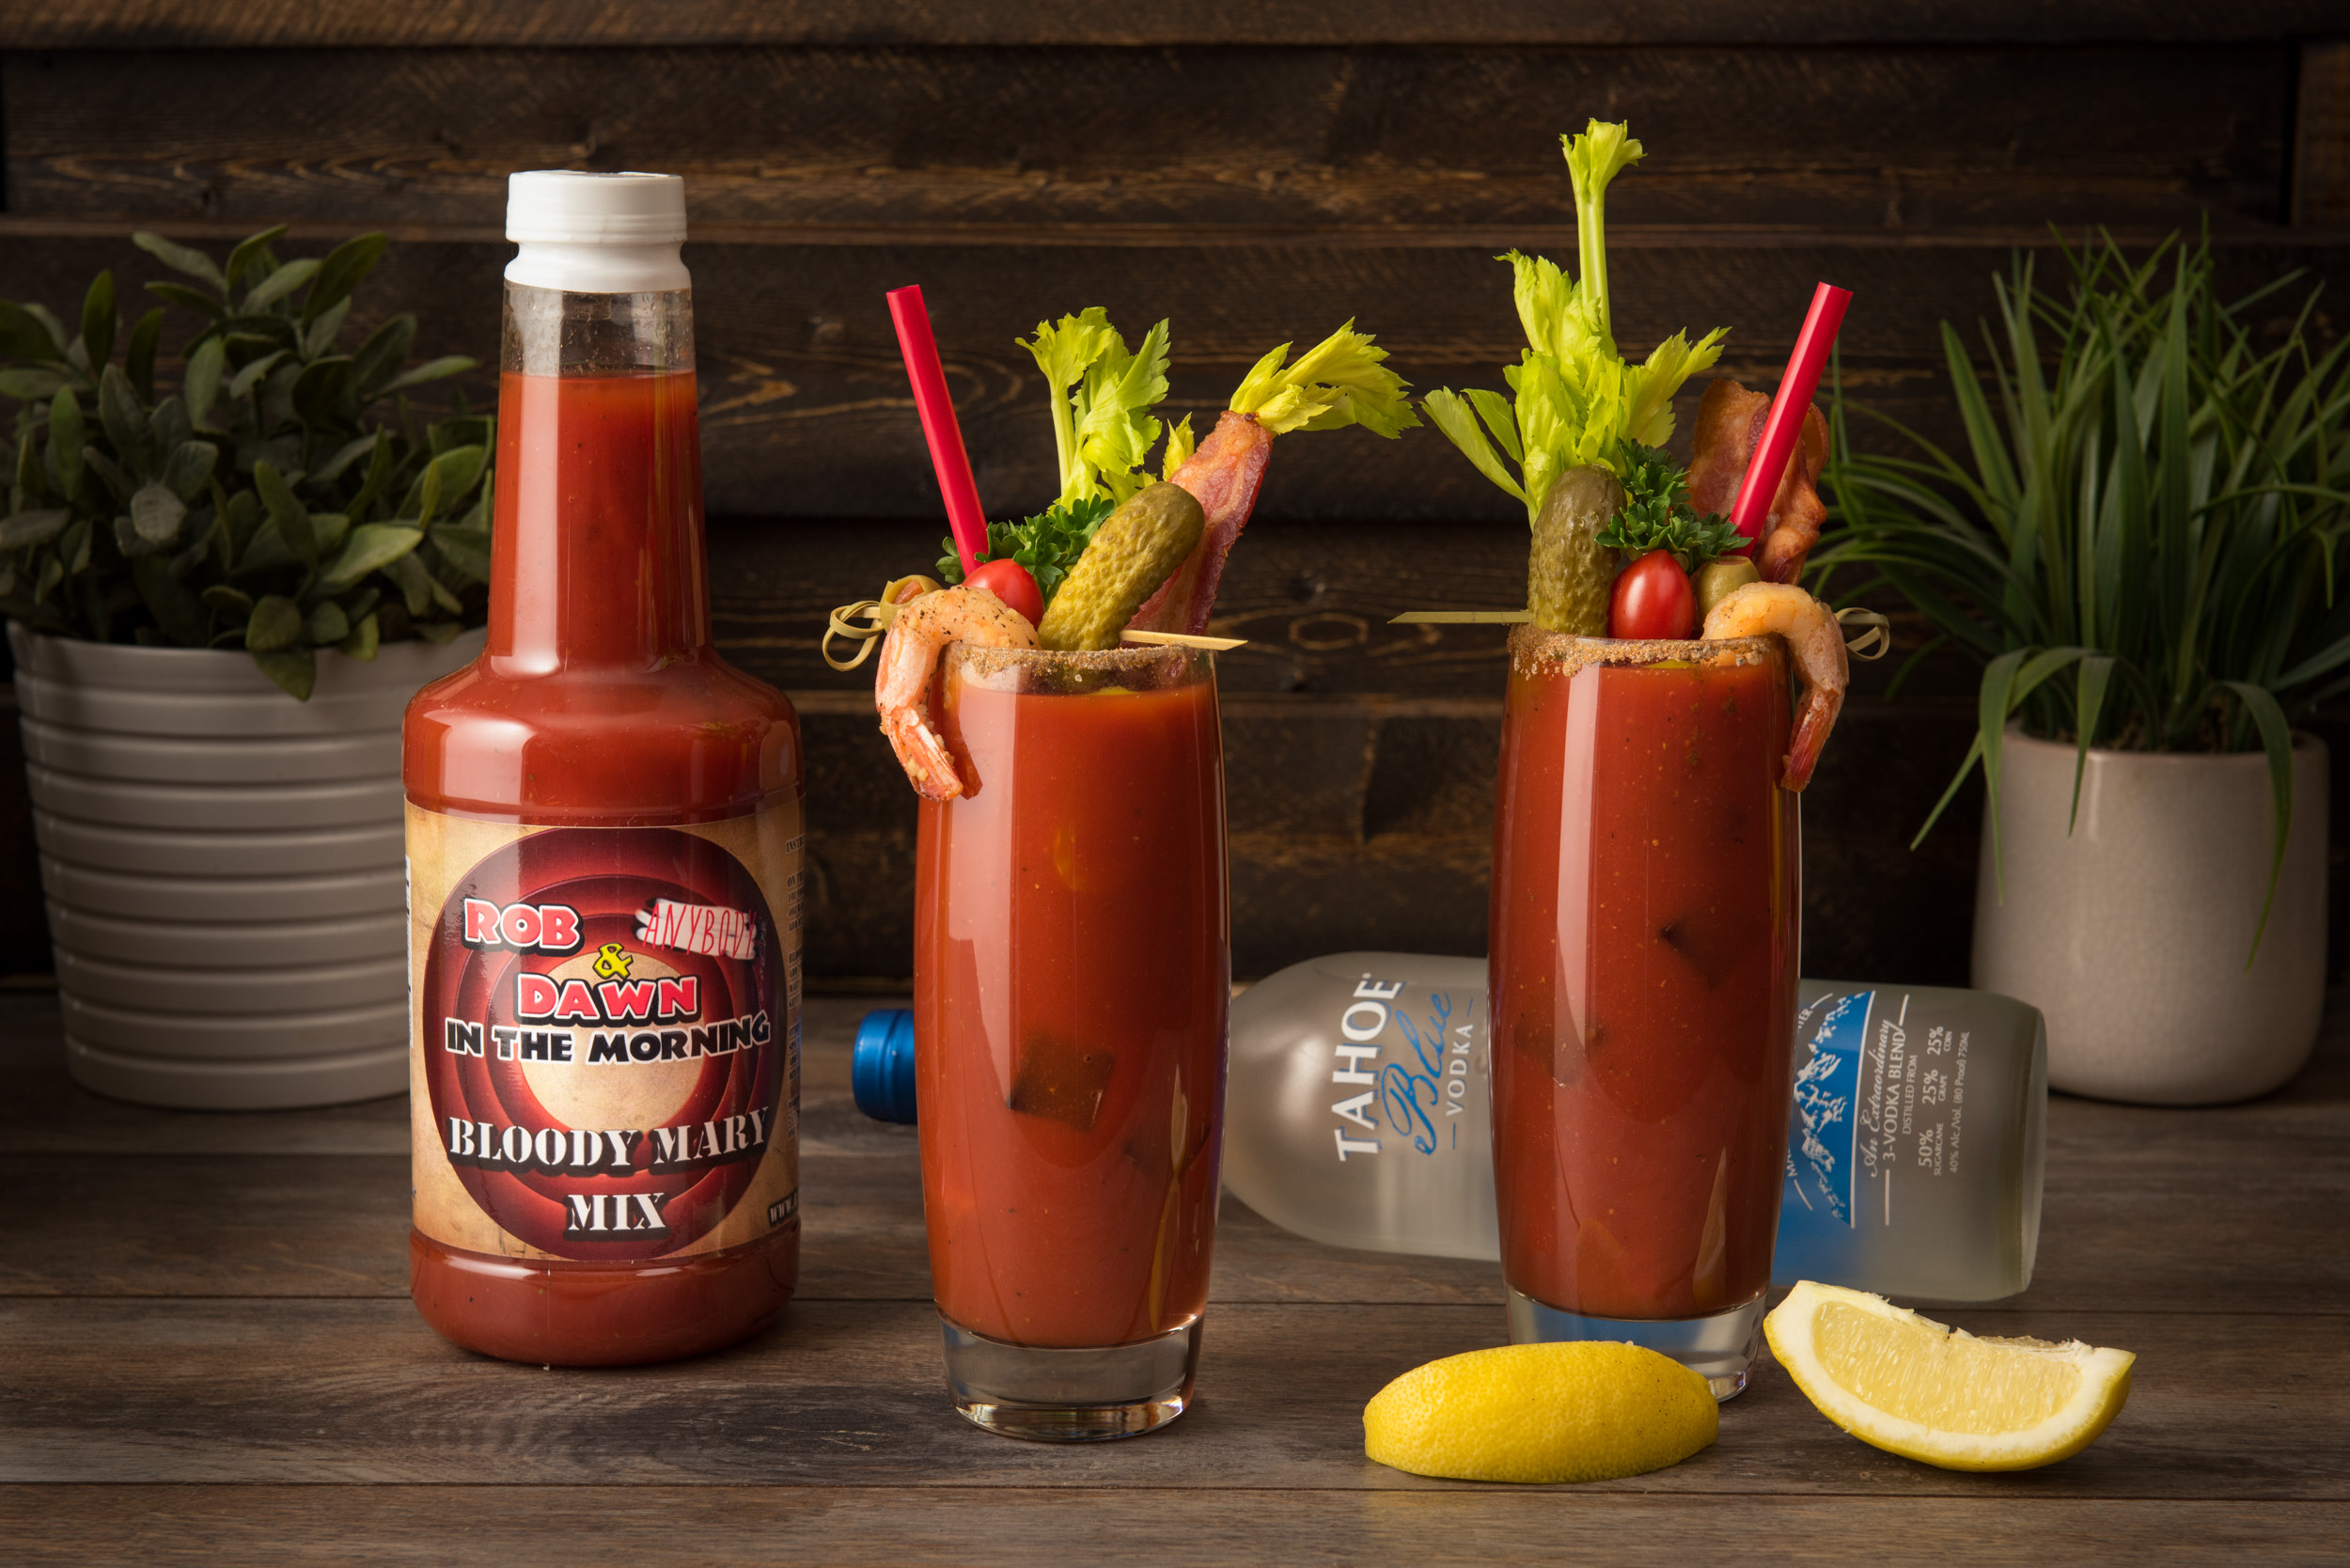 Rob Anybody & Dawn Bloody Mary Mix with Tahoe Blue Vodka